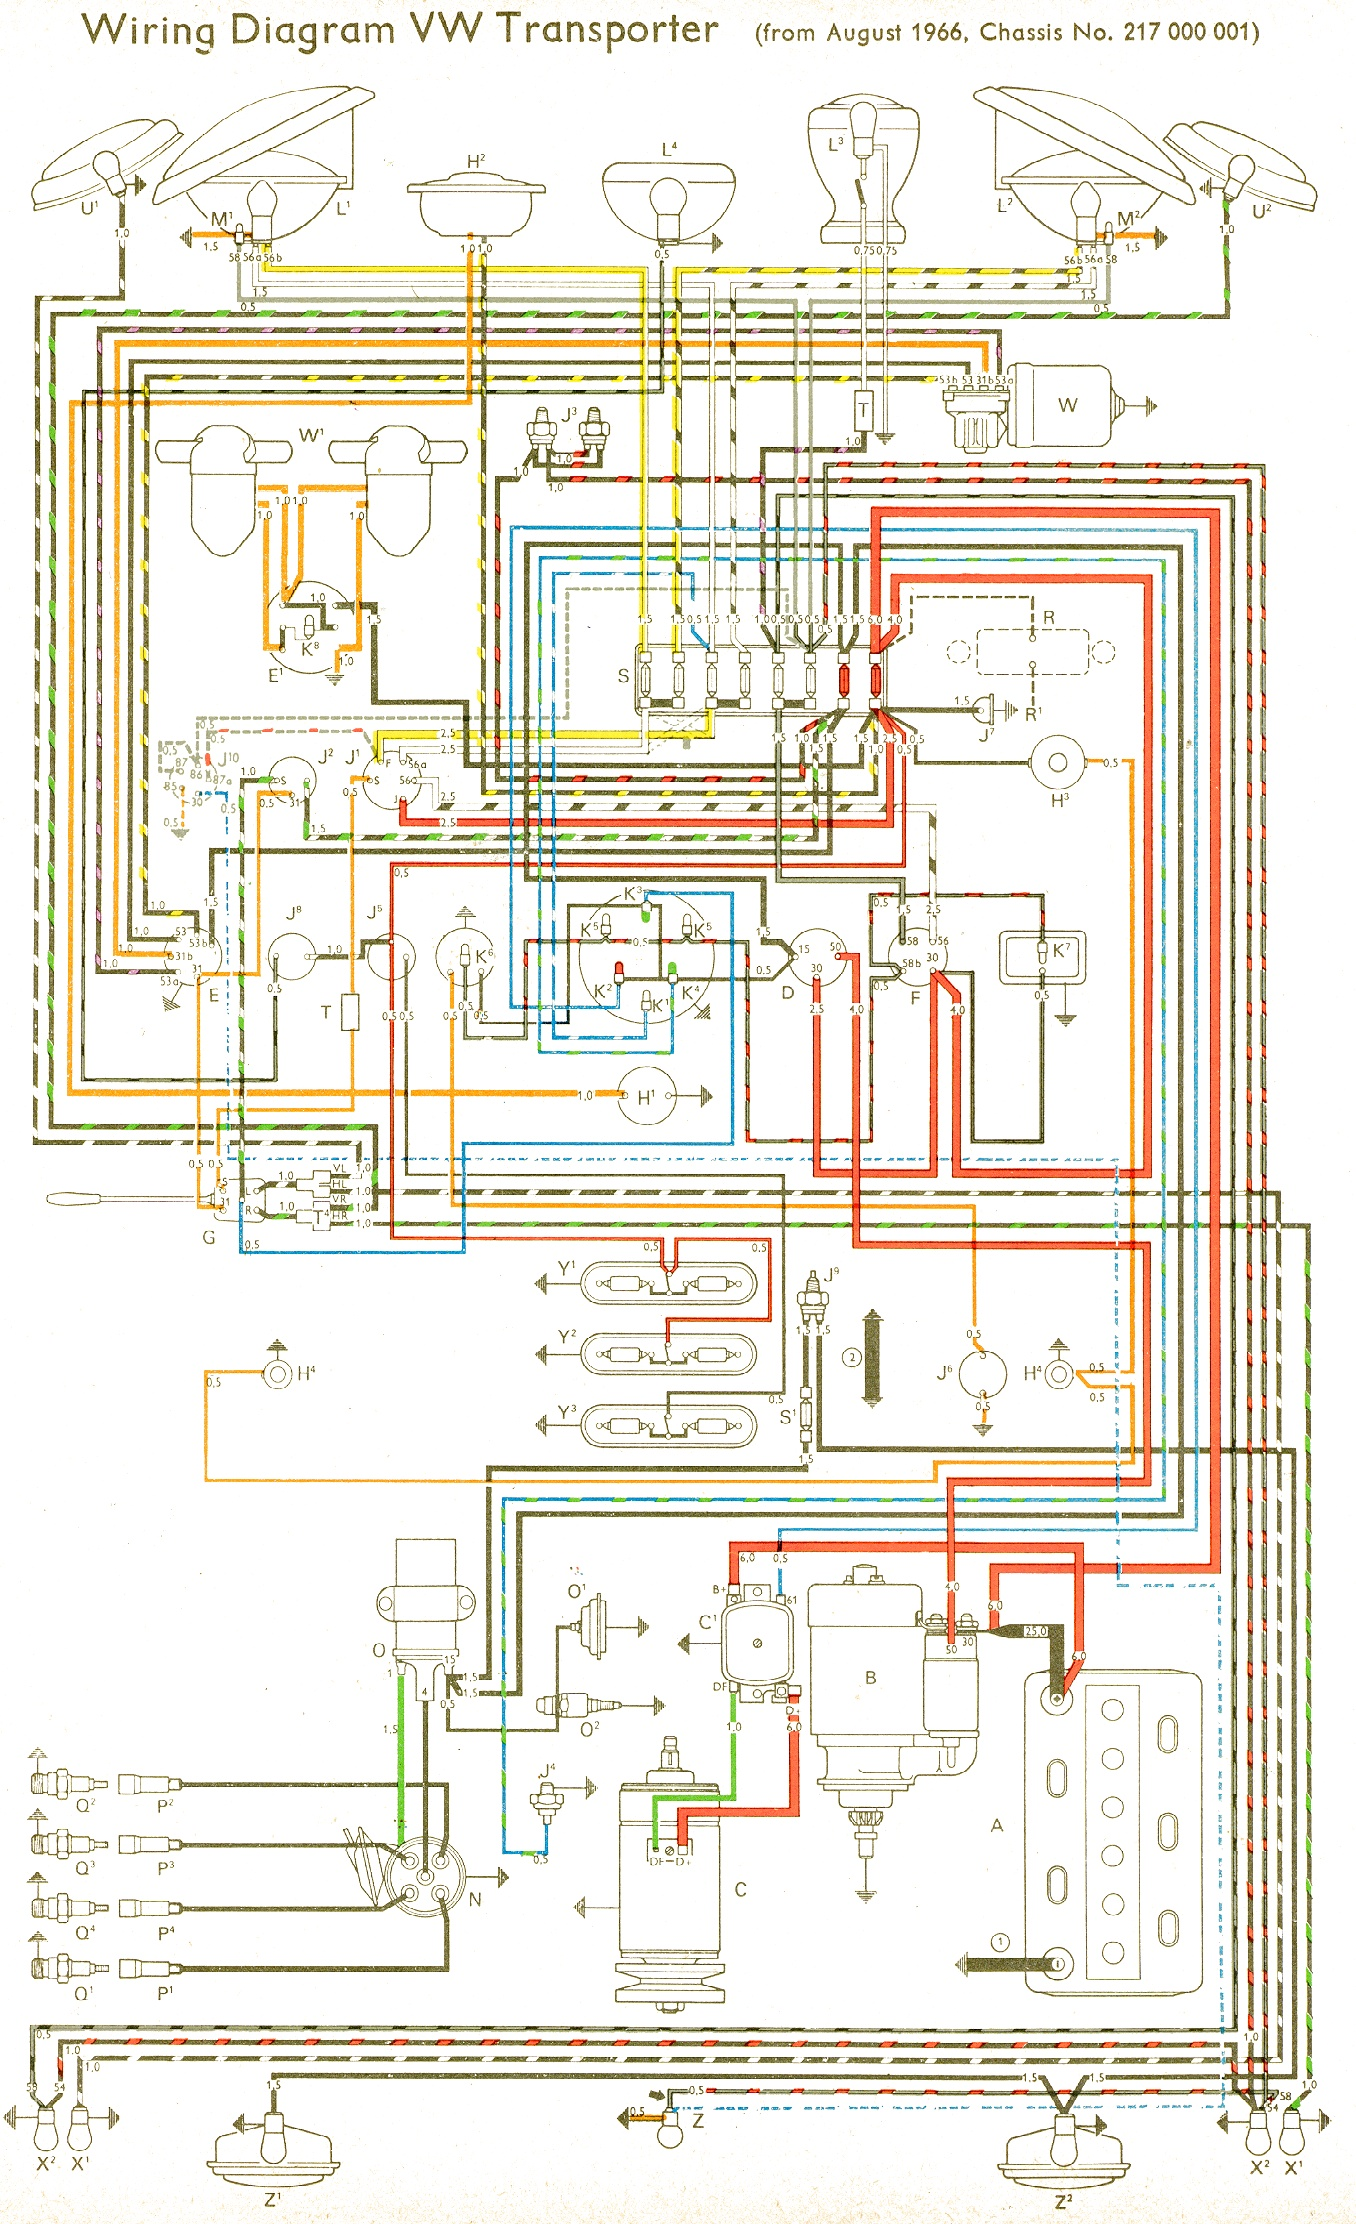 A4B4176 Bluebird School Bus Wiring Diagrams | Wiring ResourcesWiring Resources